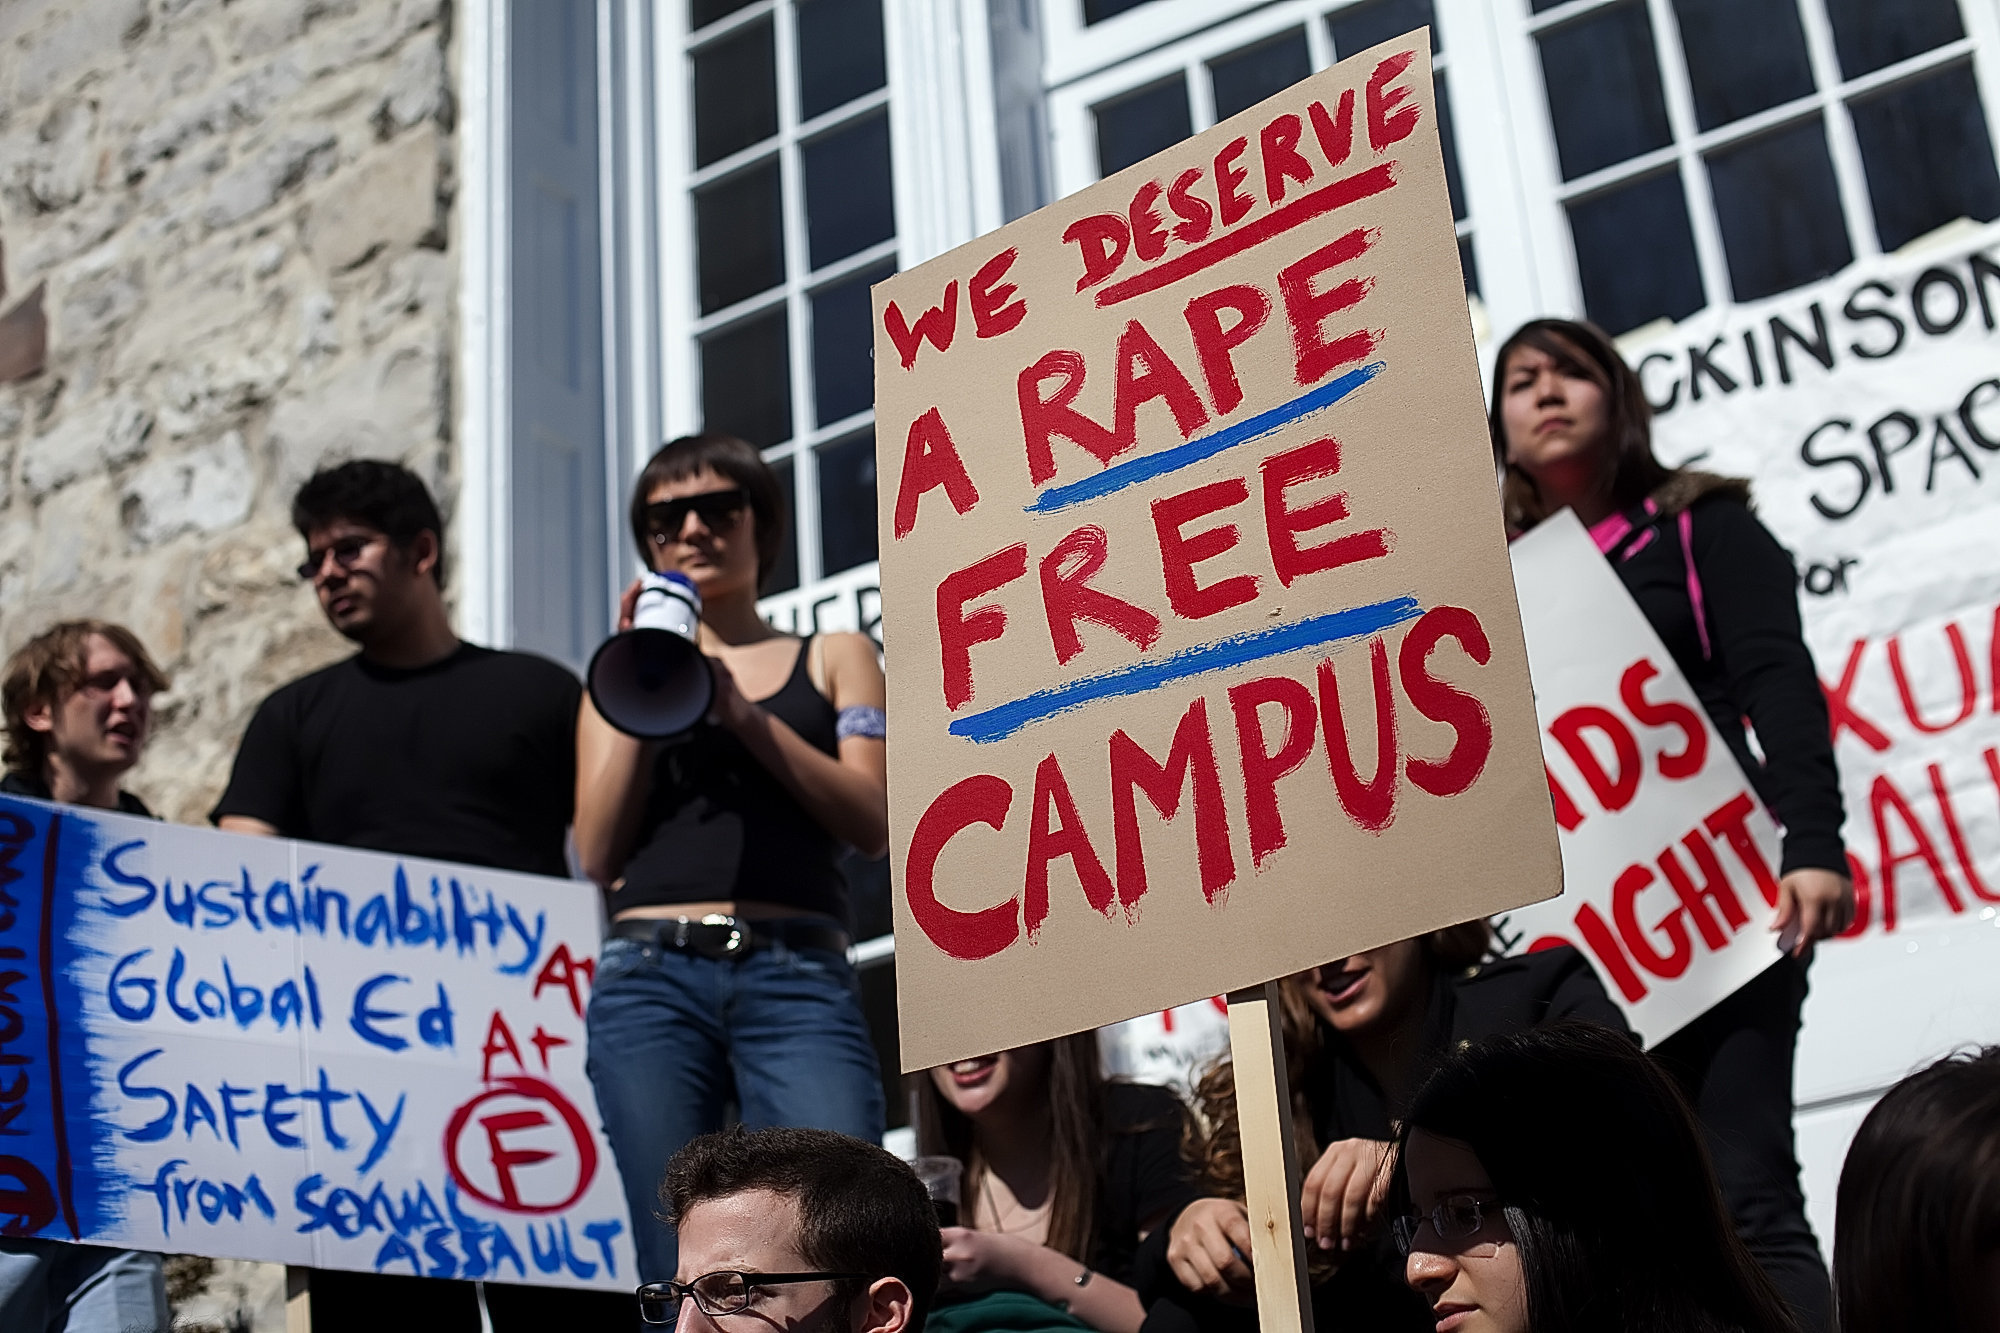 Students protesting campus sexual assault